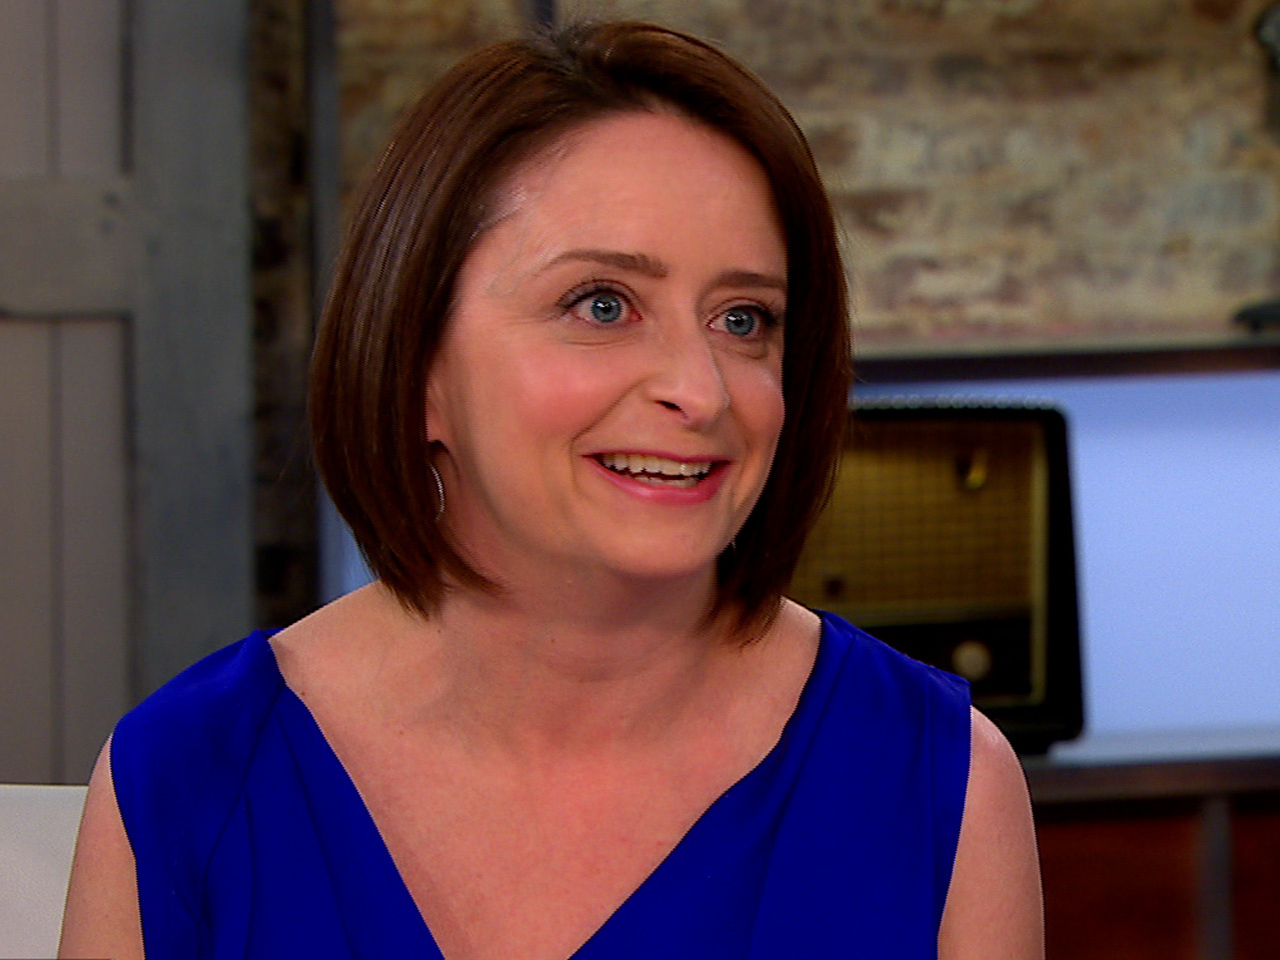 Rachel Dratch naked (25 foto and video), Topless, Cleavage, Selfie, cameltoe 2019